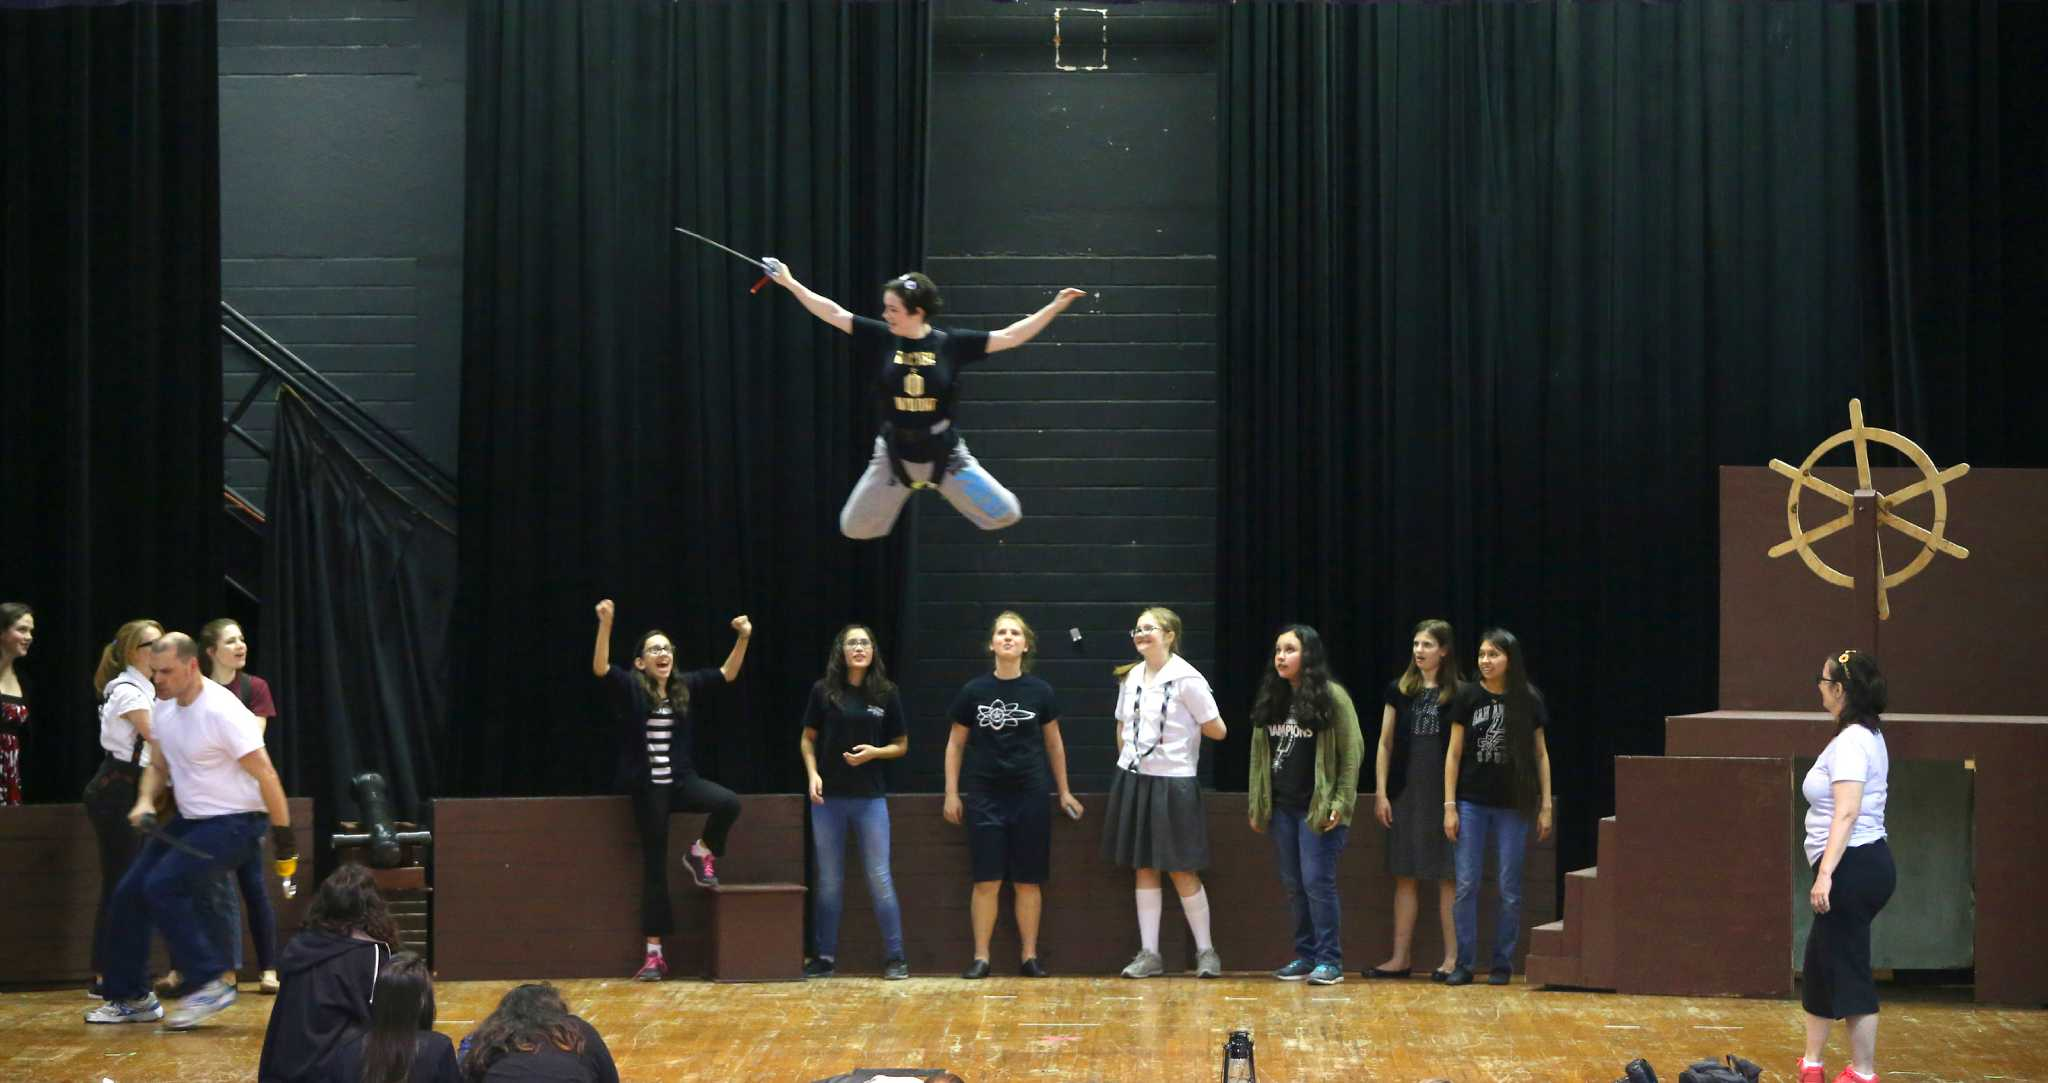 Students raise funds to make theater production of Peter Pan